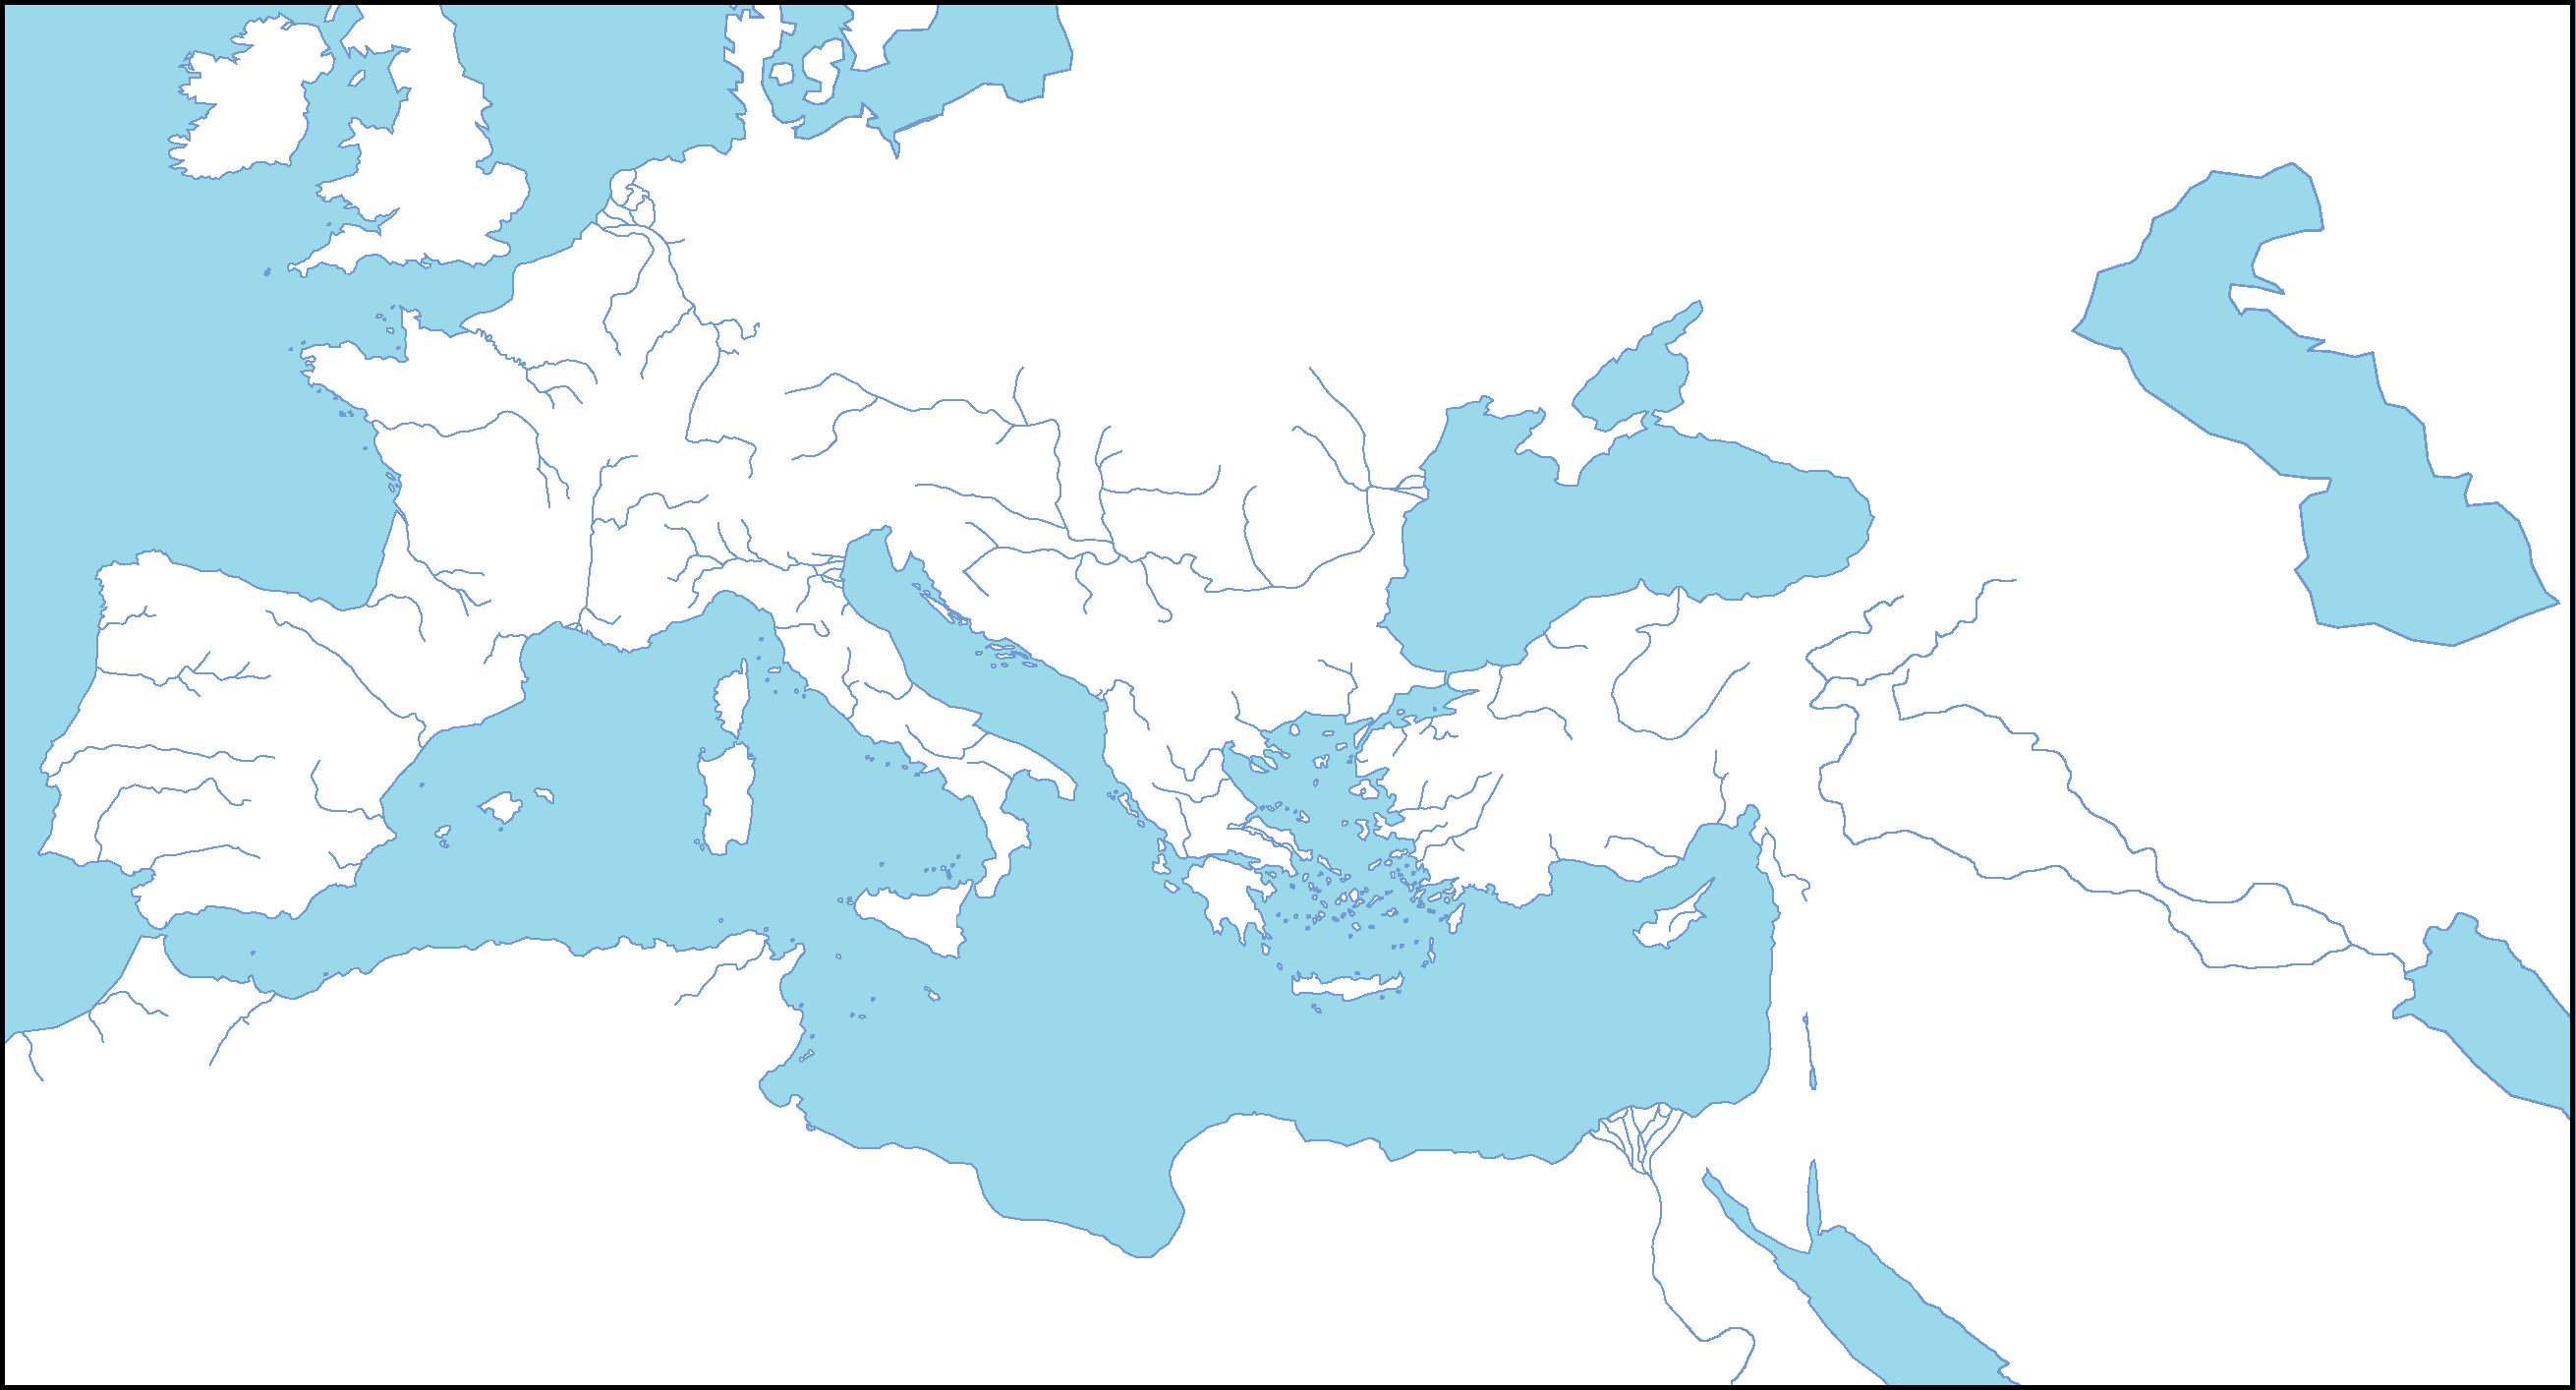 Ancient And Medieval Europe - Macedonia map quiz